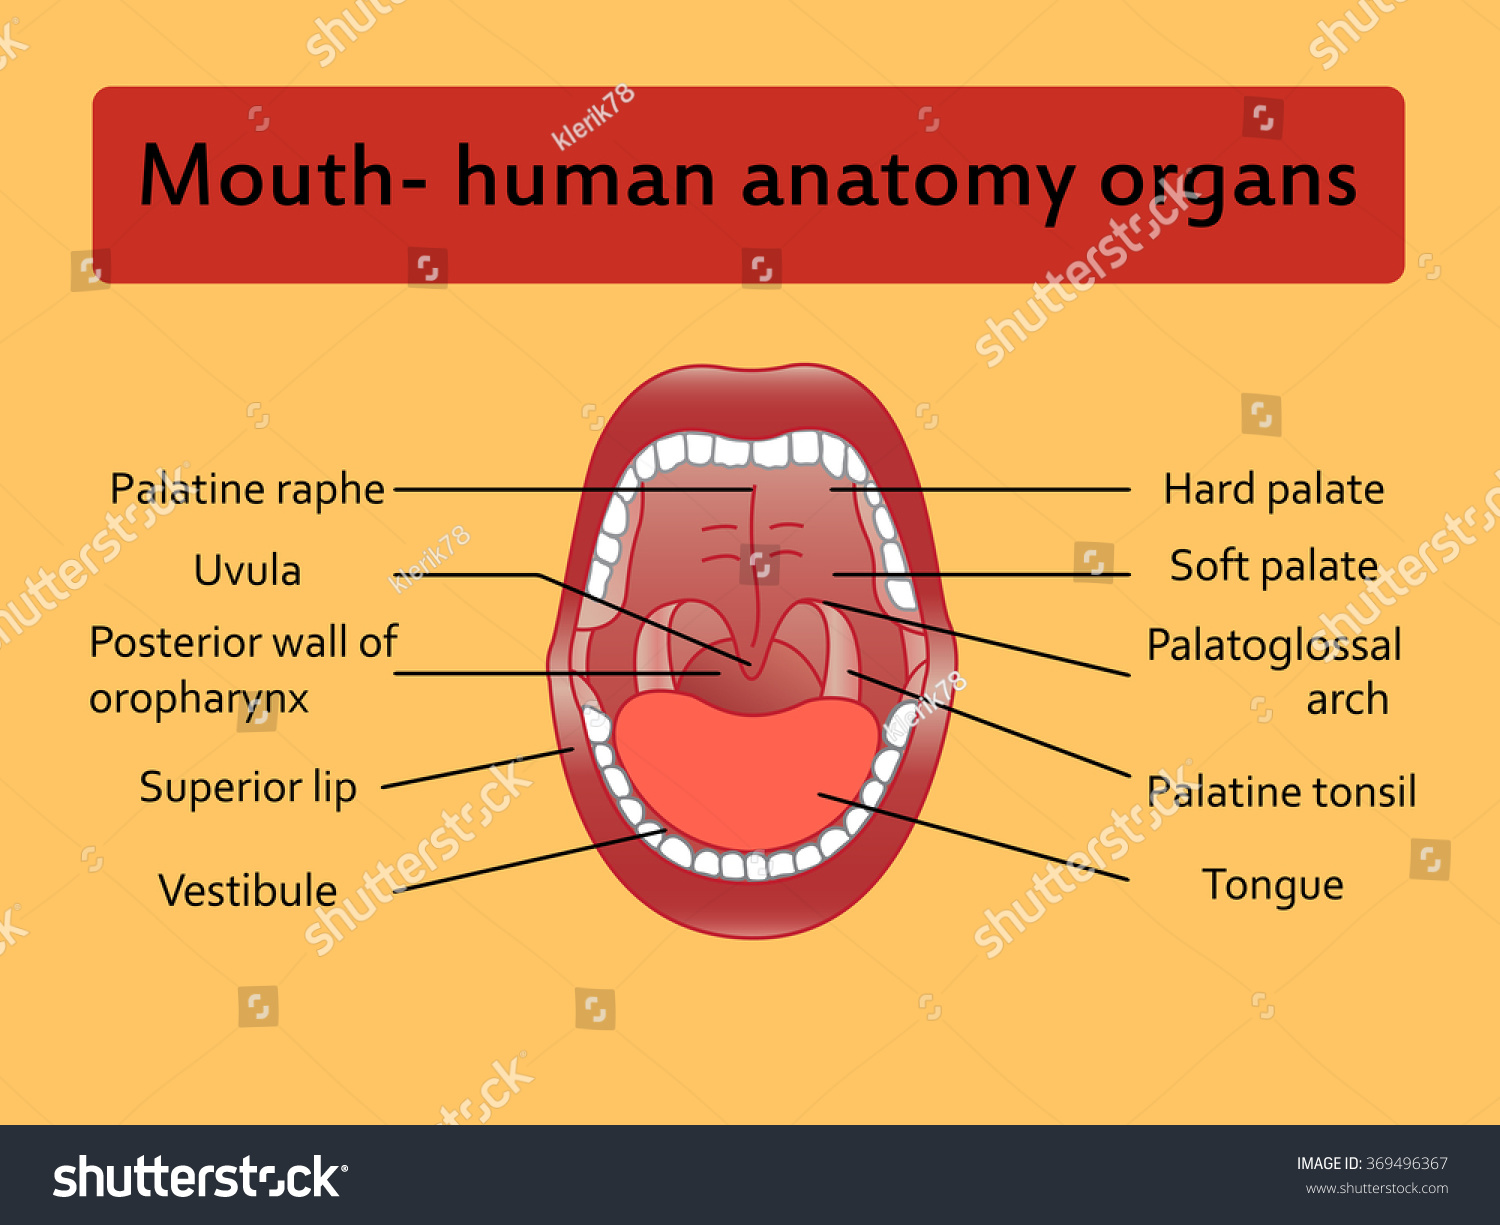 parts human mouth open mouth white stock vector 369496367, Cephalic Vein